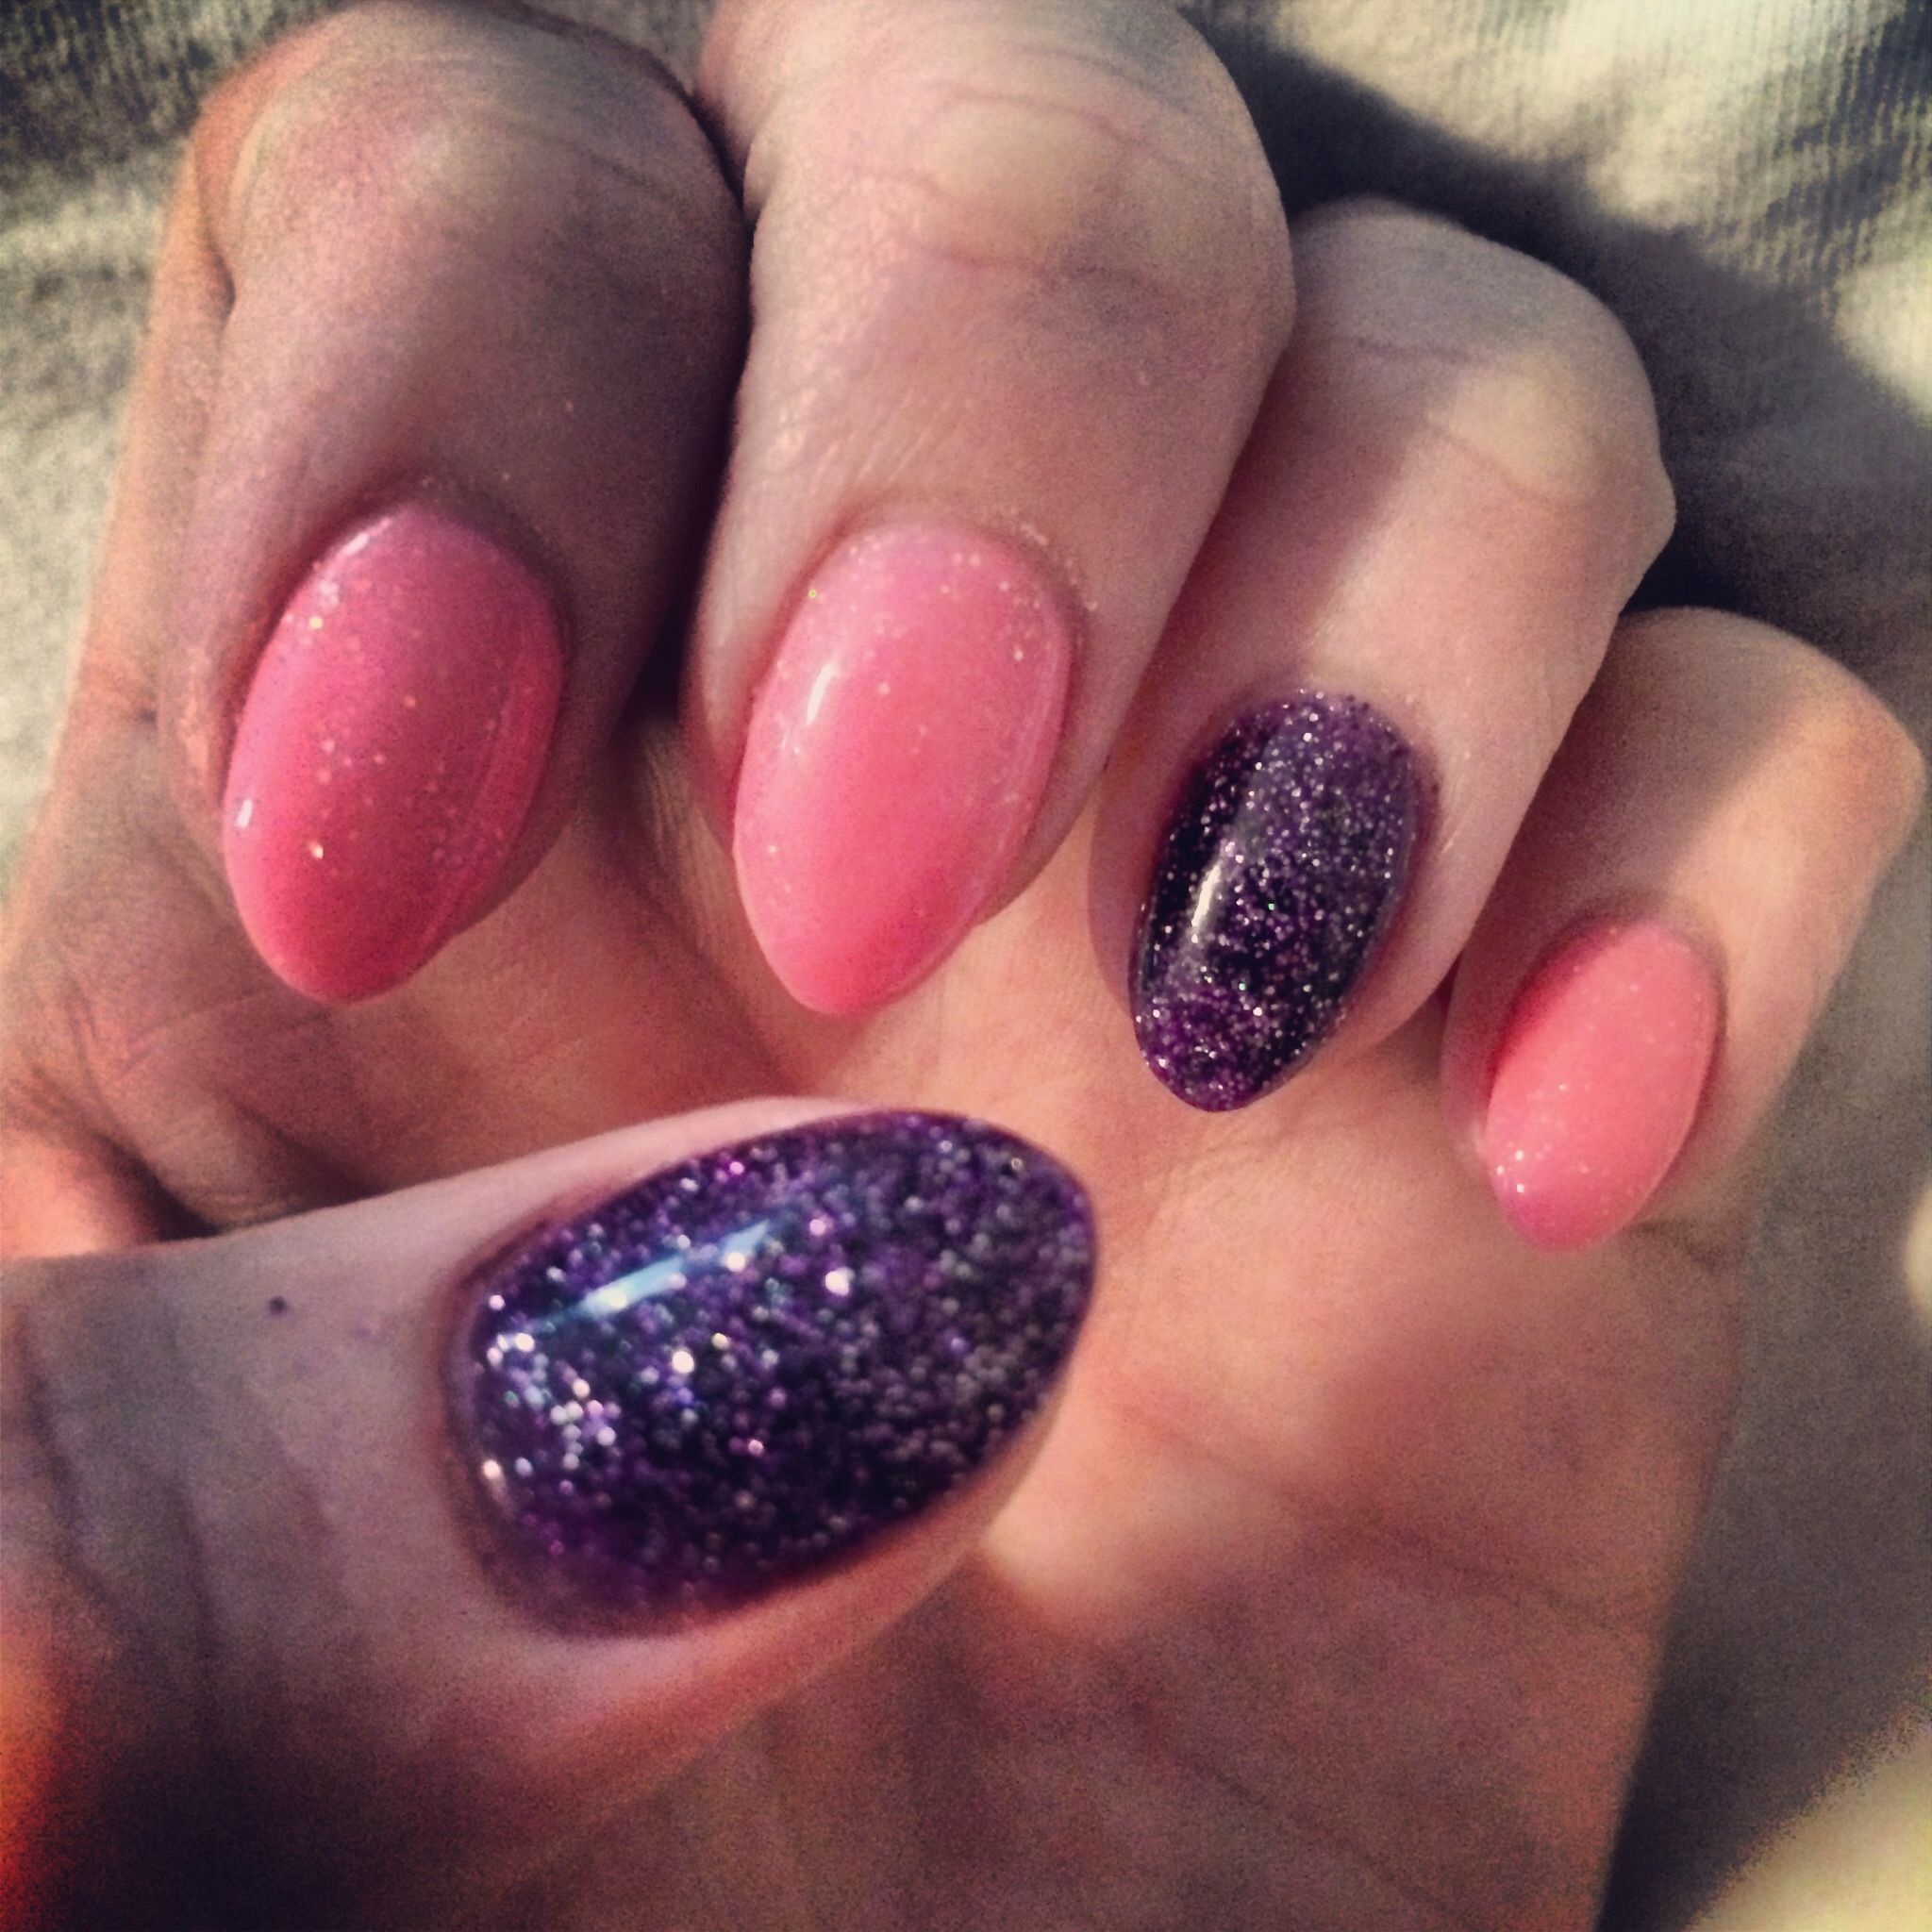 Almond nail shape | Nail polish | Pinterest | Almond nails ...